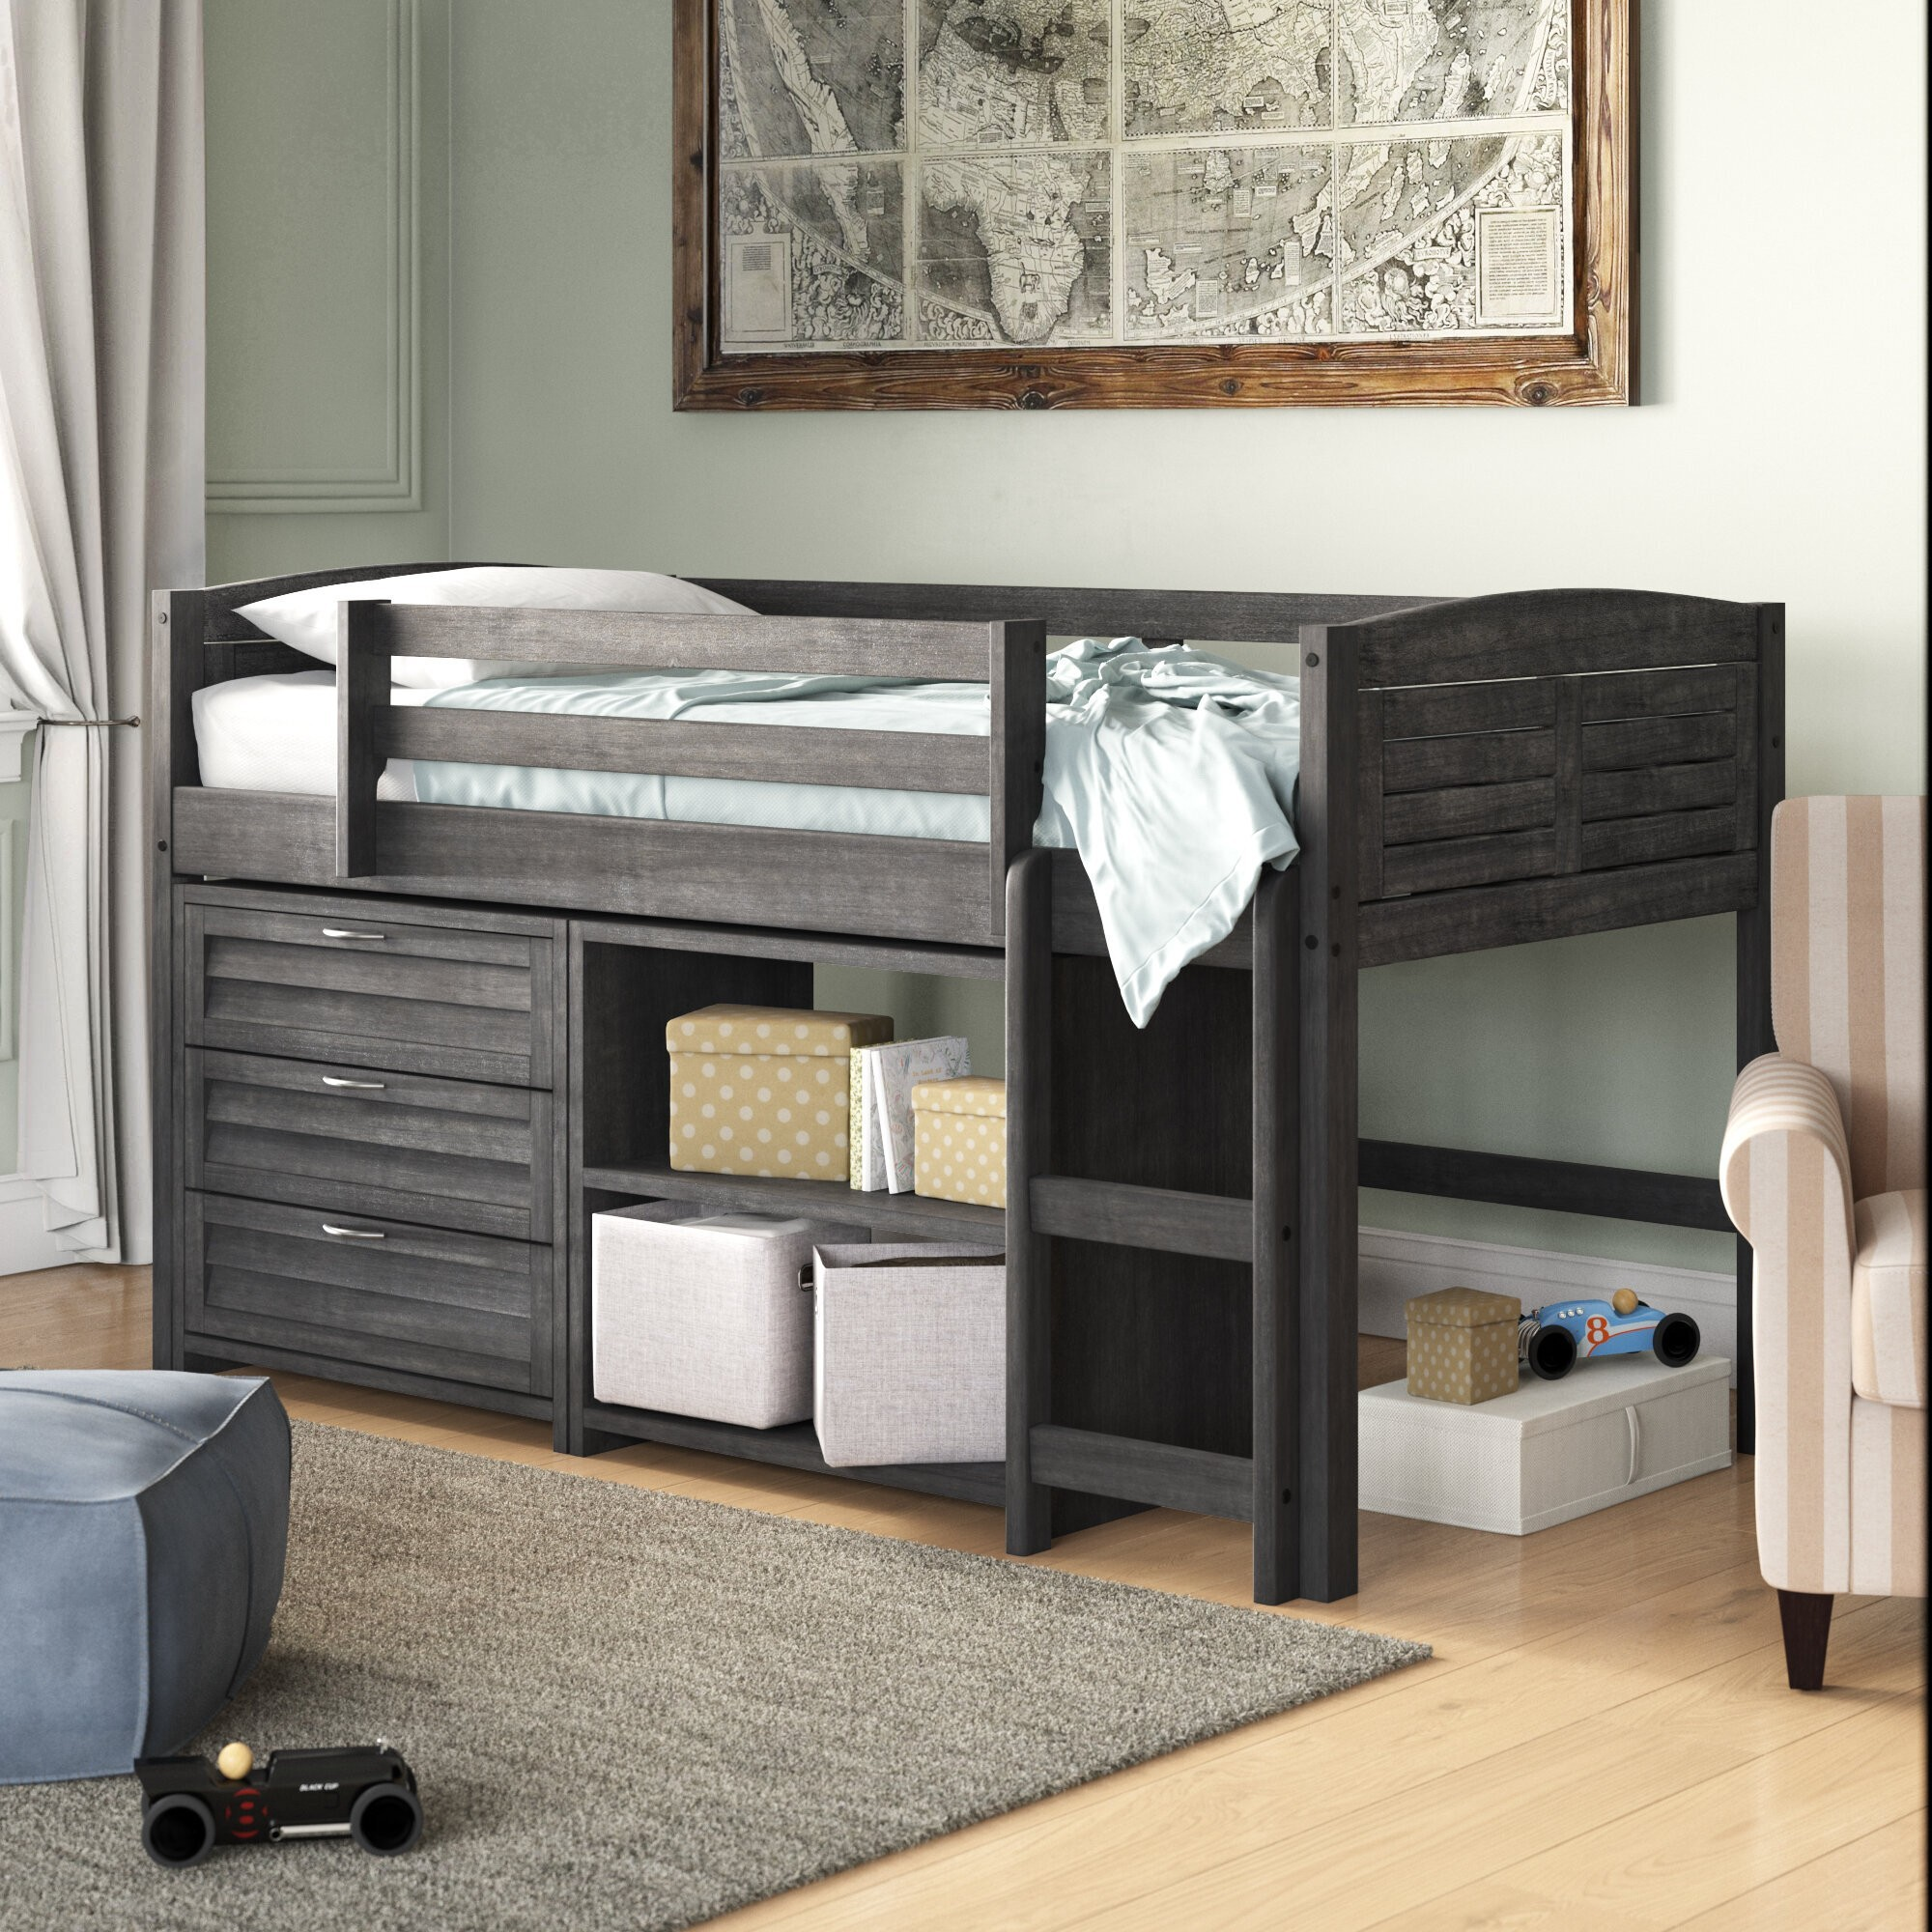 How To Choose A Loft Bed